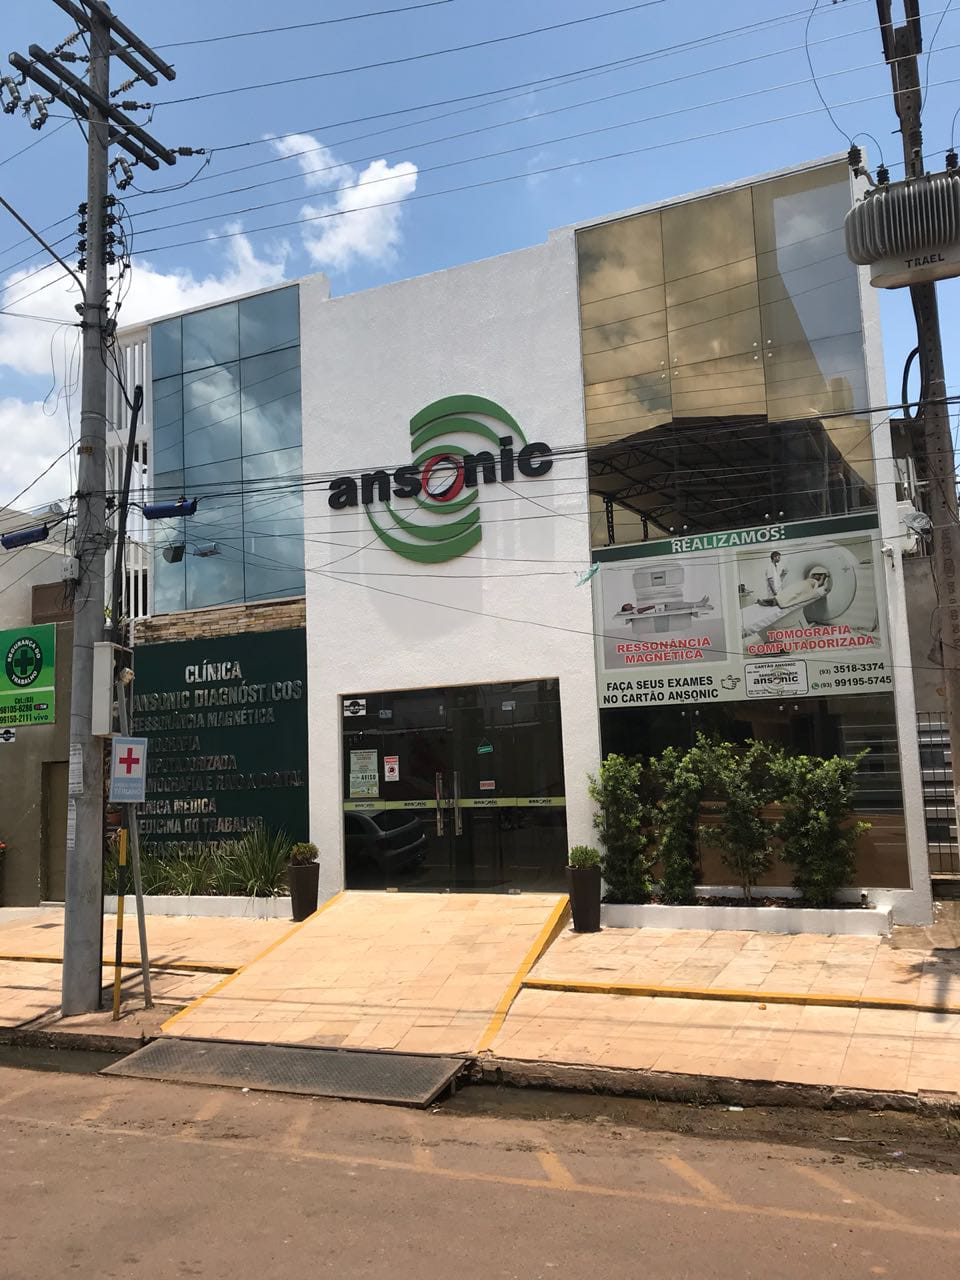 Ansonic Diagnóstico